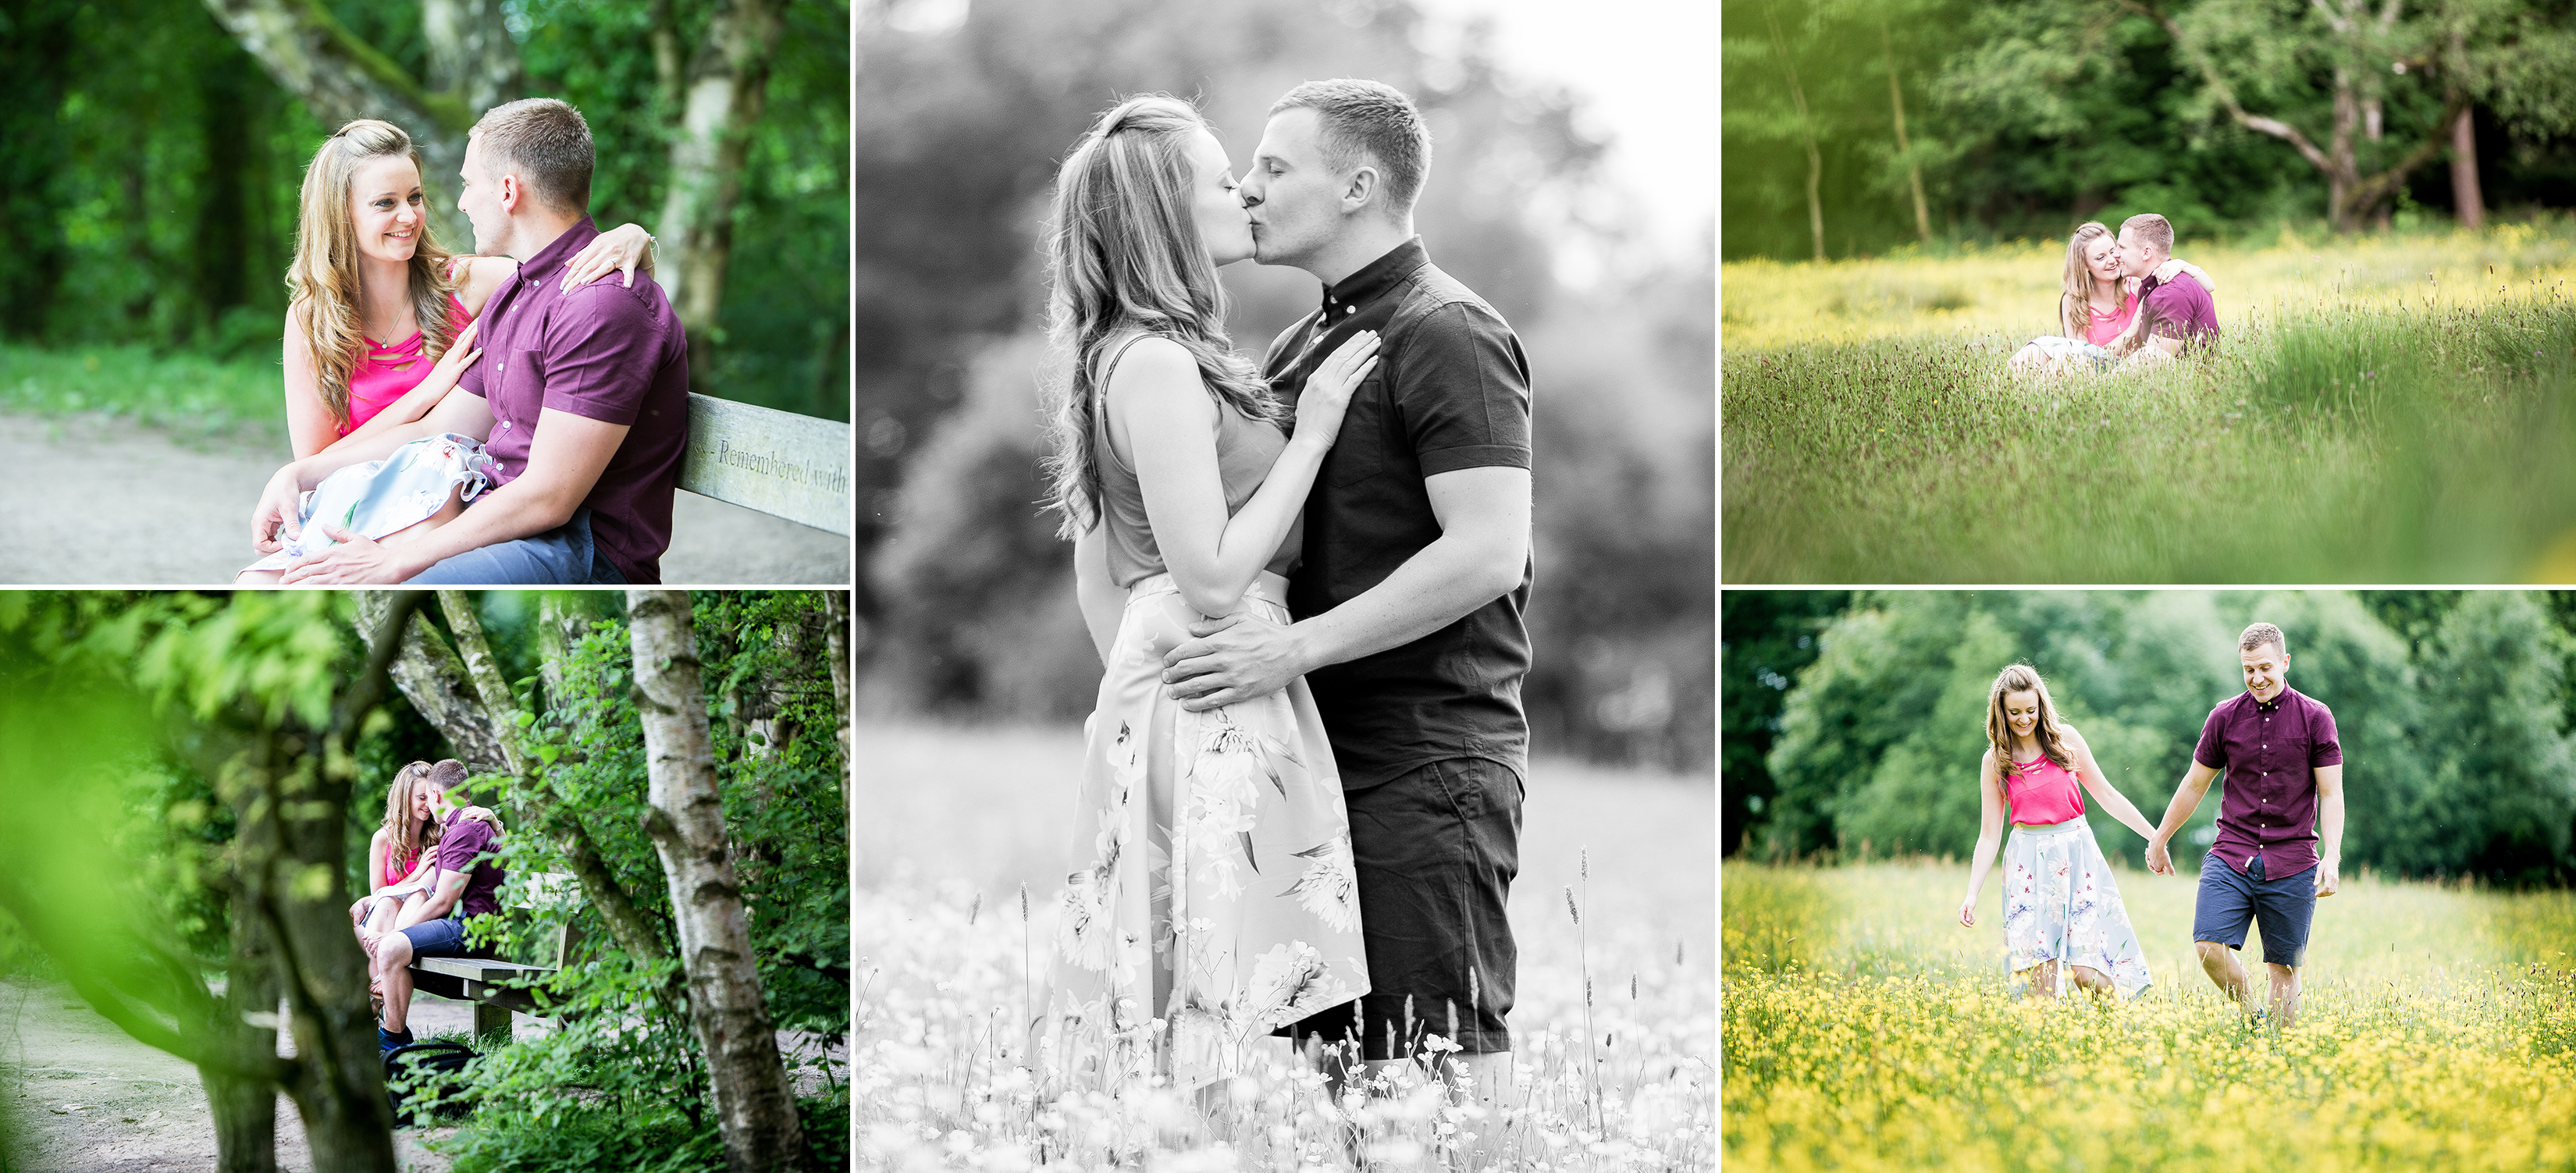 Rachel & Micheal Pre-Wedding Shoot Biddulp.